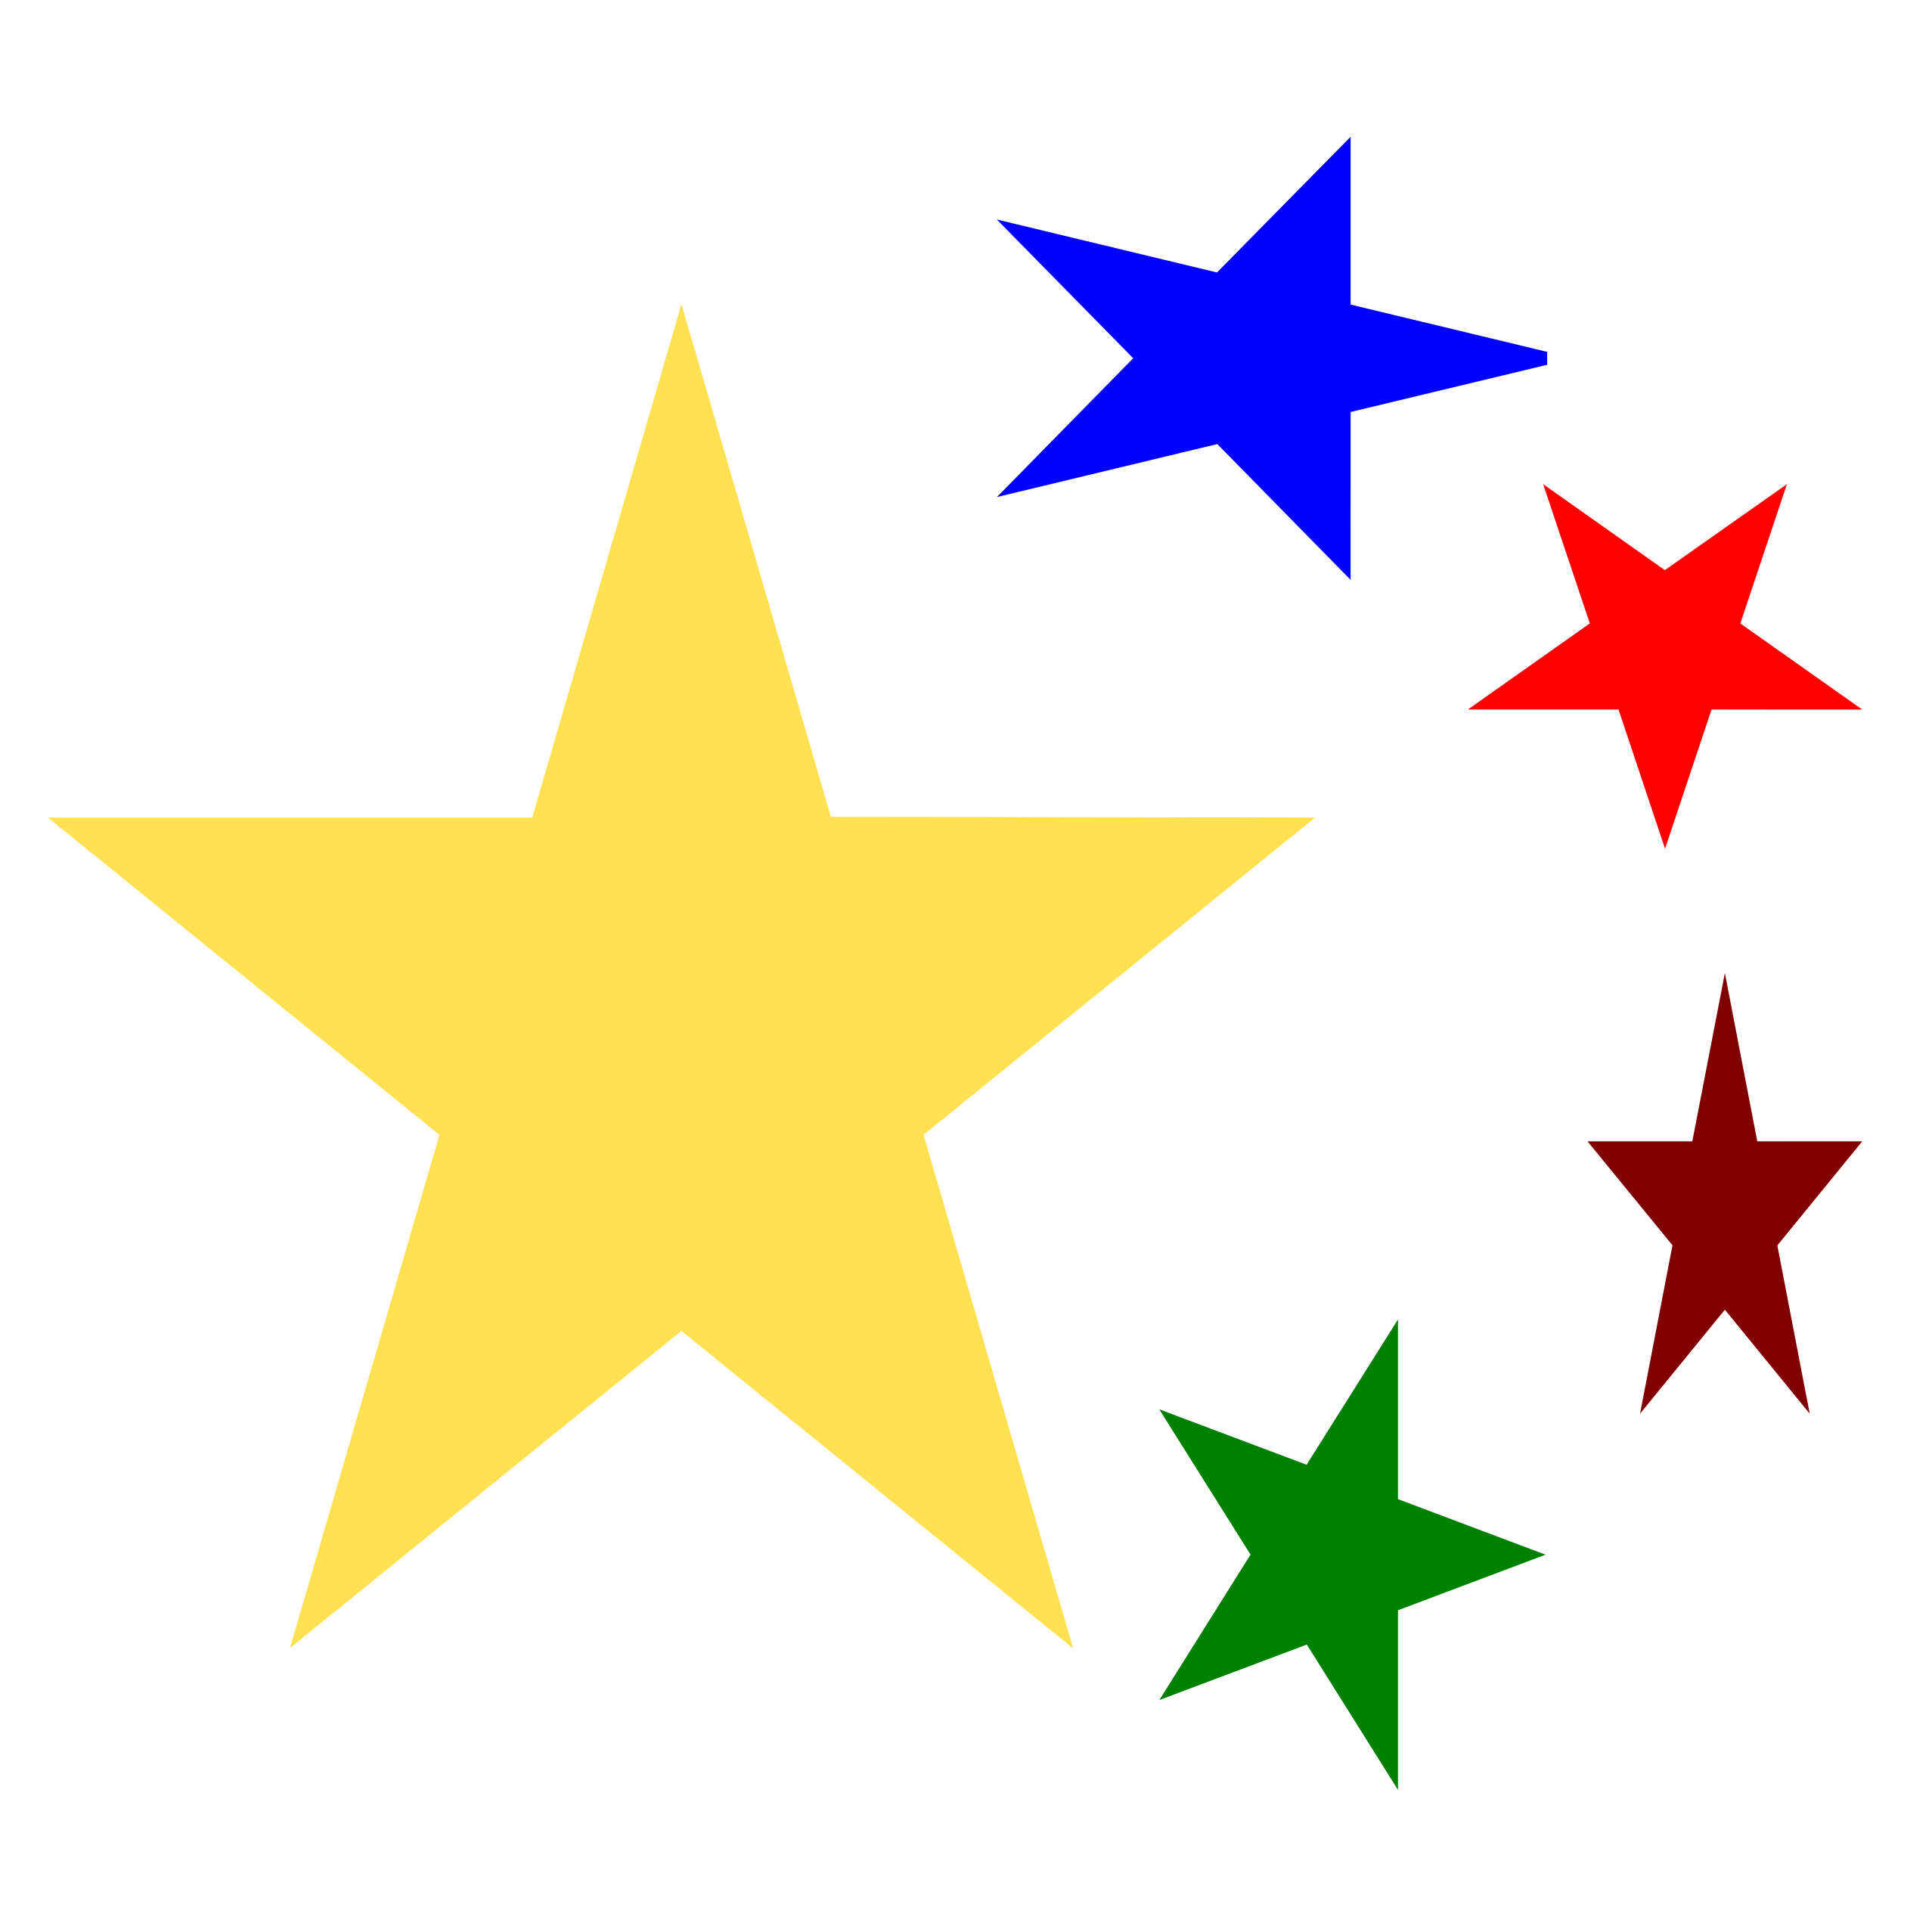 Yellow Star Clipart - ClipArt Best